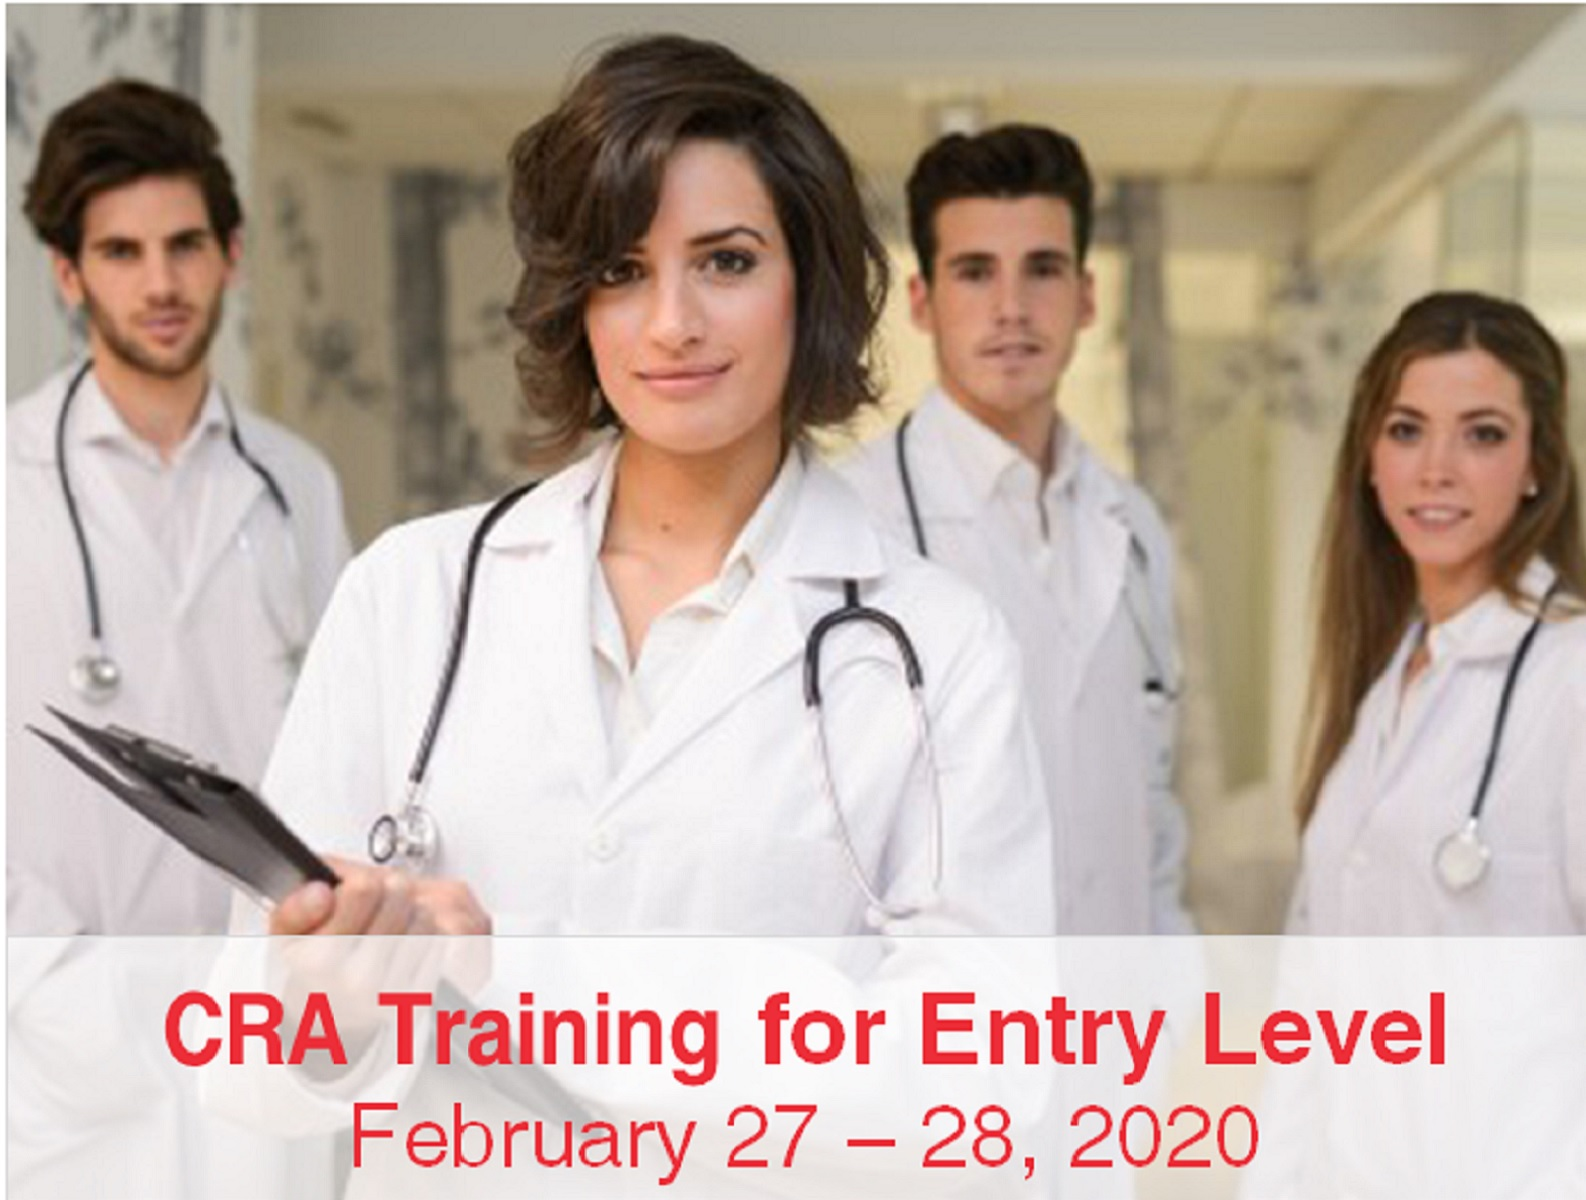 Open registrations for Clinical Research Associate (CRA) Training for Entry Level!